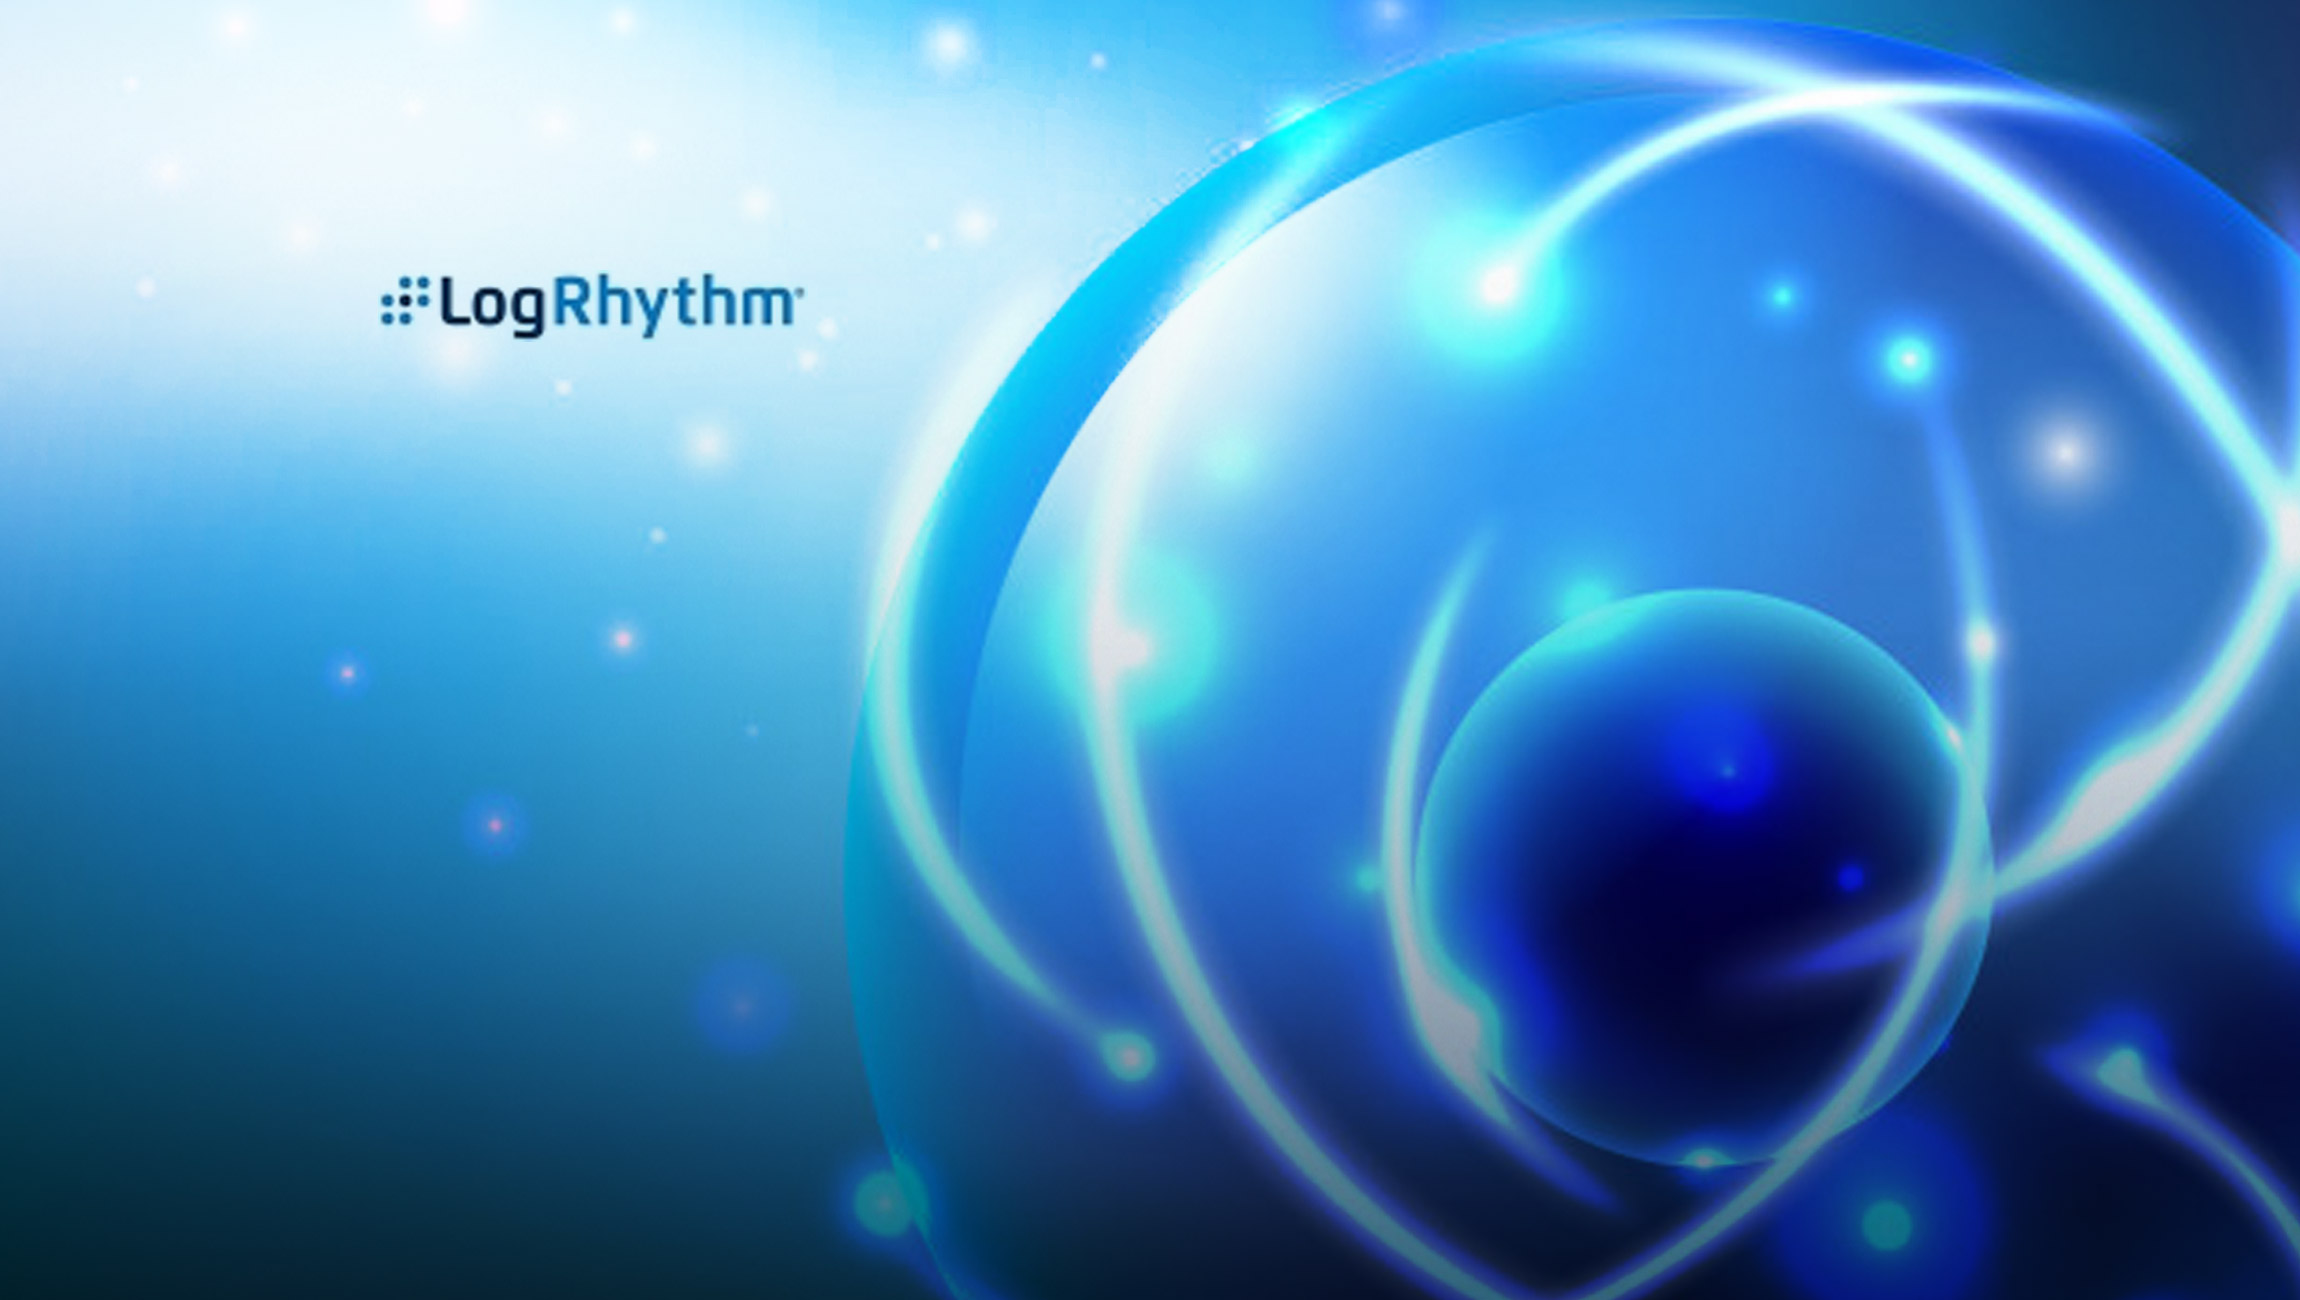 LogRhythm Announces Customer Satisfaction Score Increase of 50% and the Addition of New Product and Human Resources Executives During the First Half of 2020